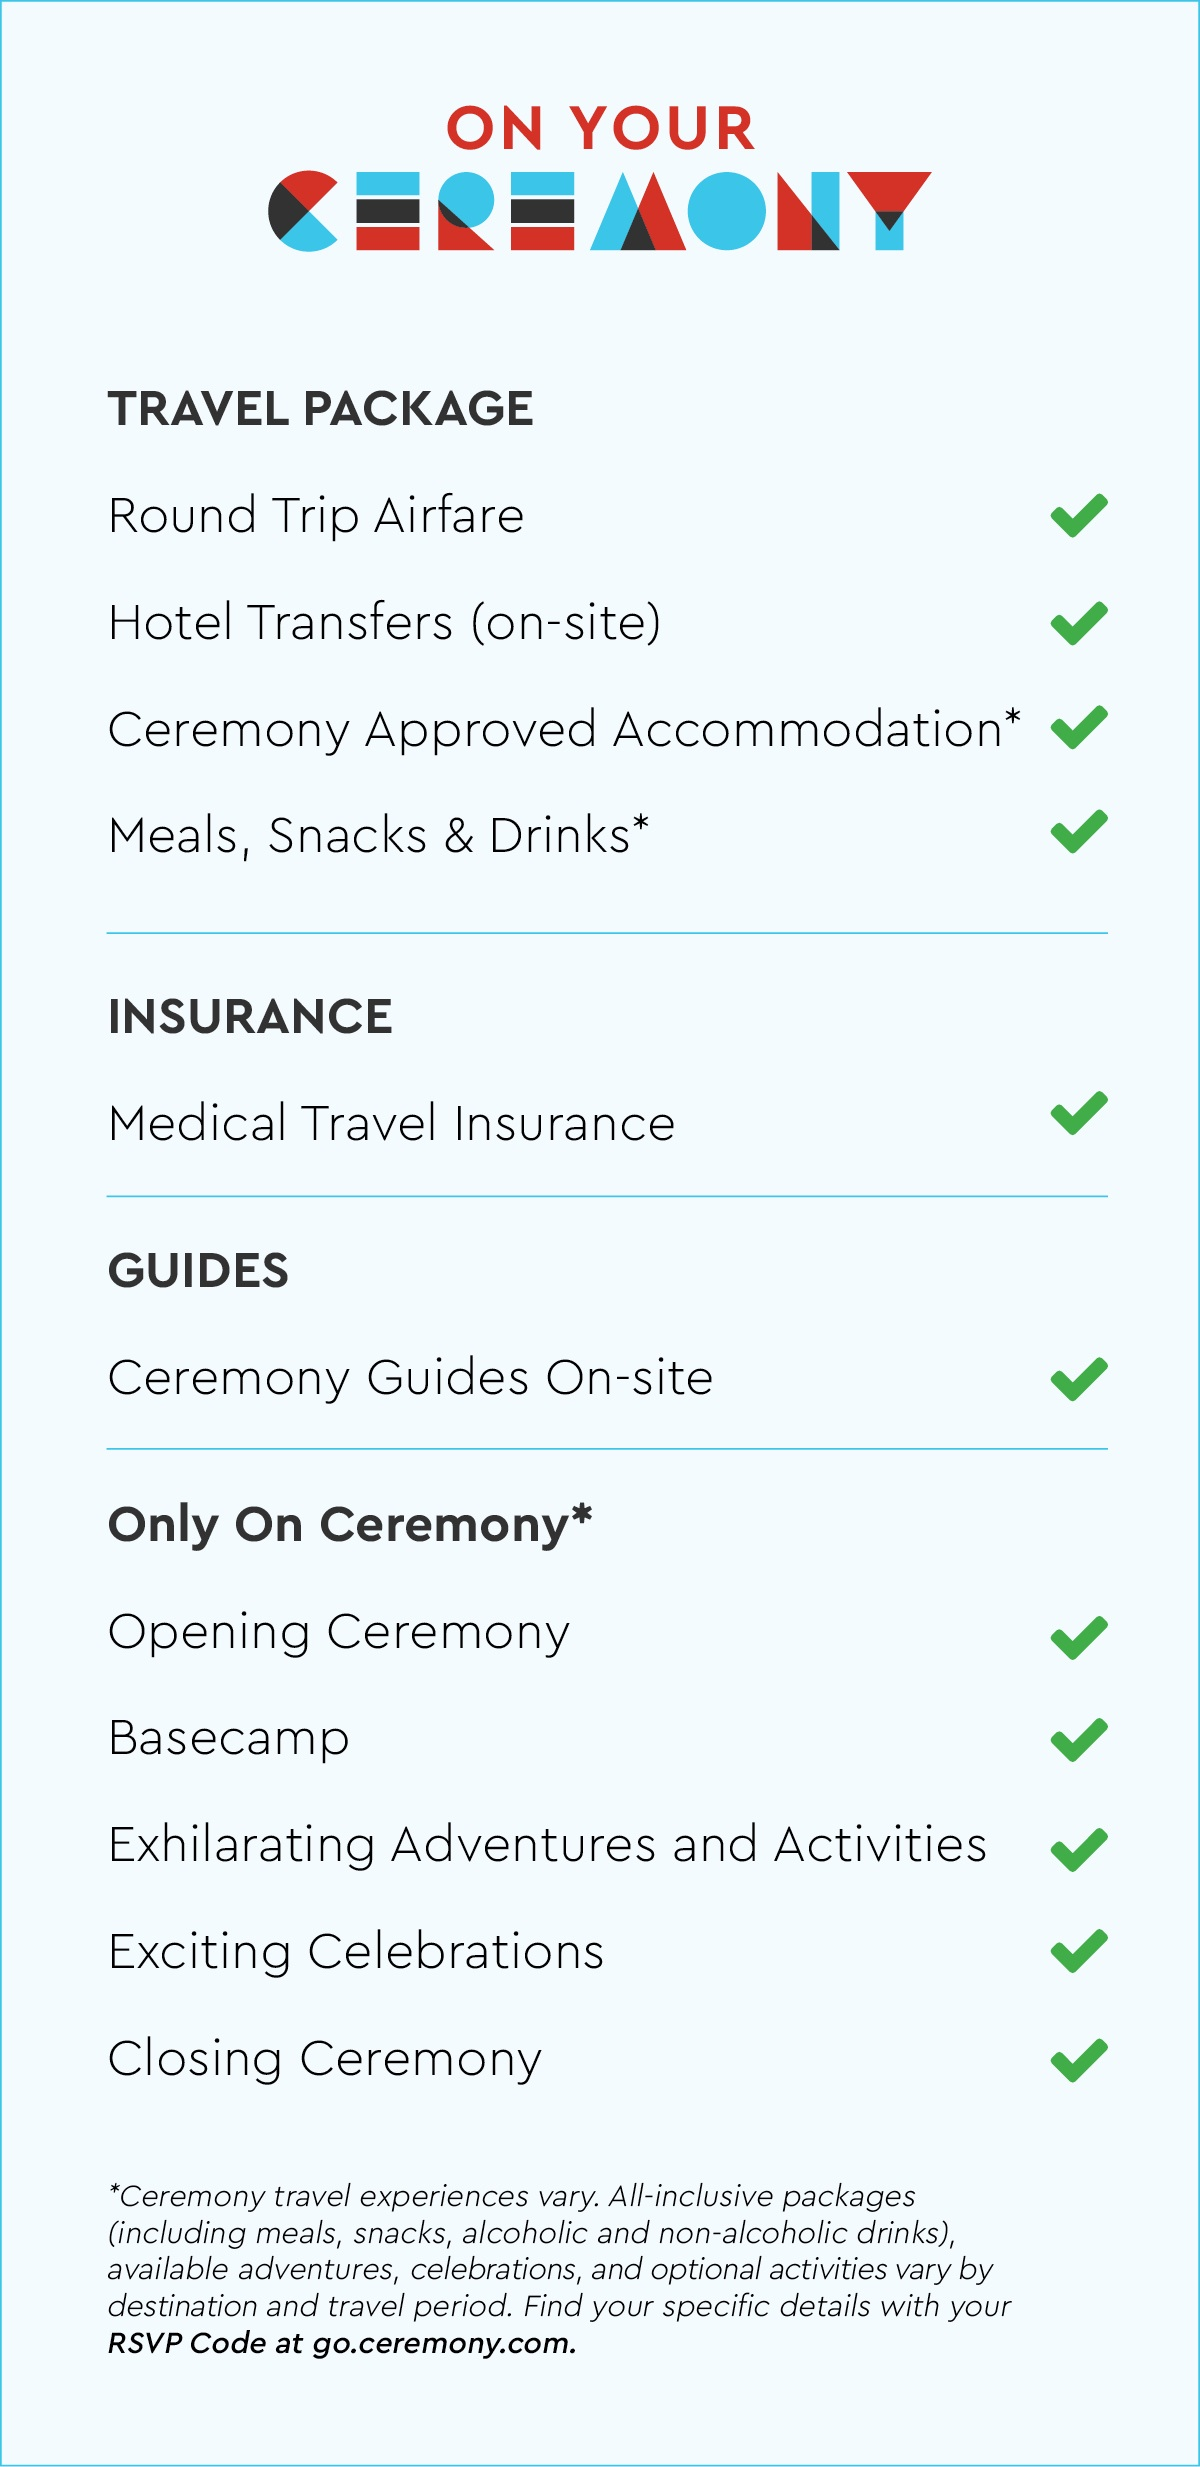 Ceremony travel experiences vary. All-inclusive packages (including meals, snacks, alcoholic and non-alcoholic drinks), available adventures, celebrations, and optional activities vary by destination and travel period. Find your specific details with your  RSVP Code at go.ceremony.com.